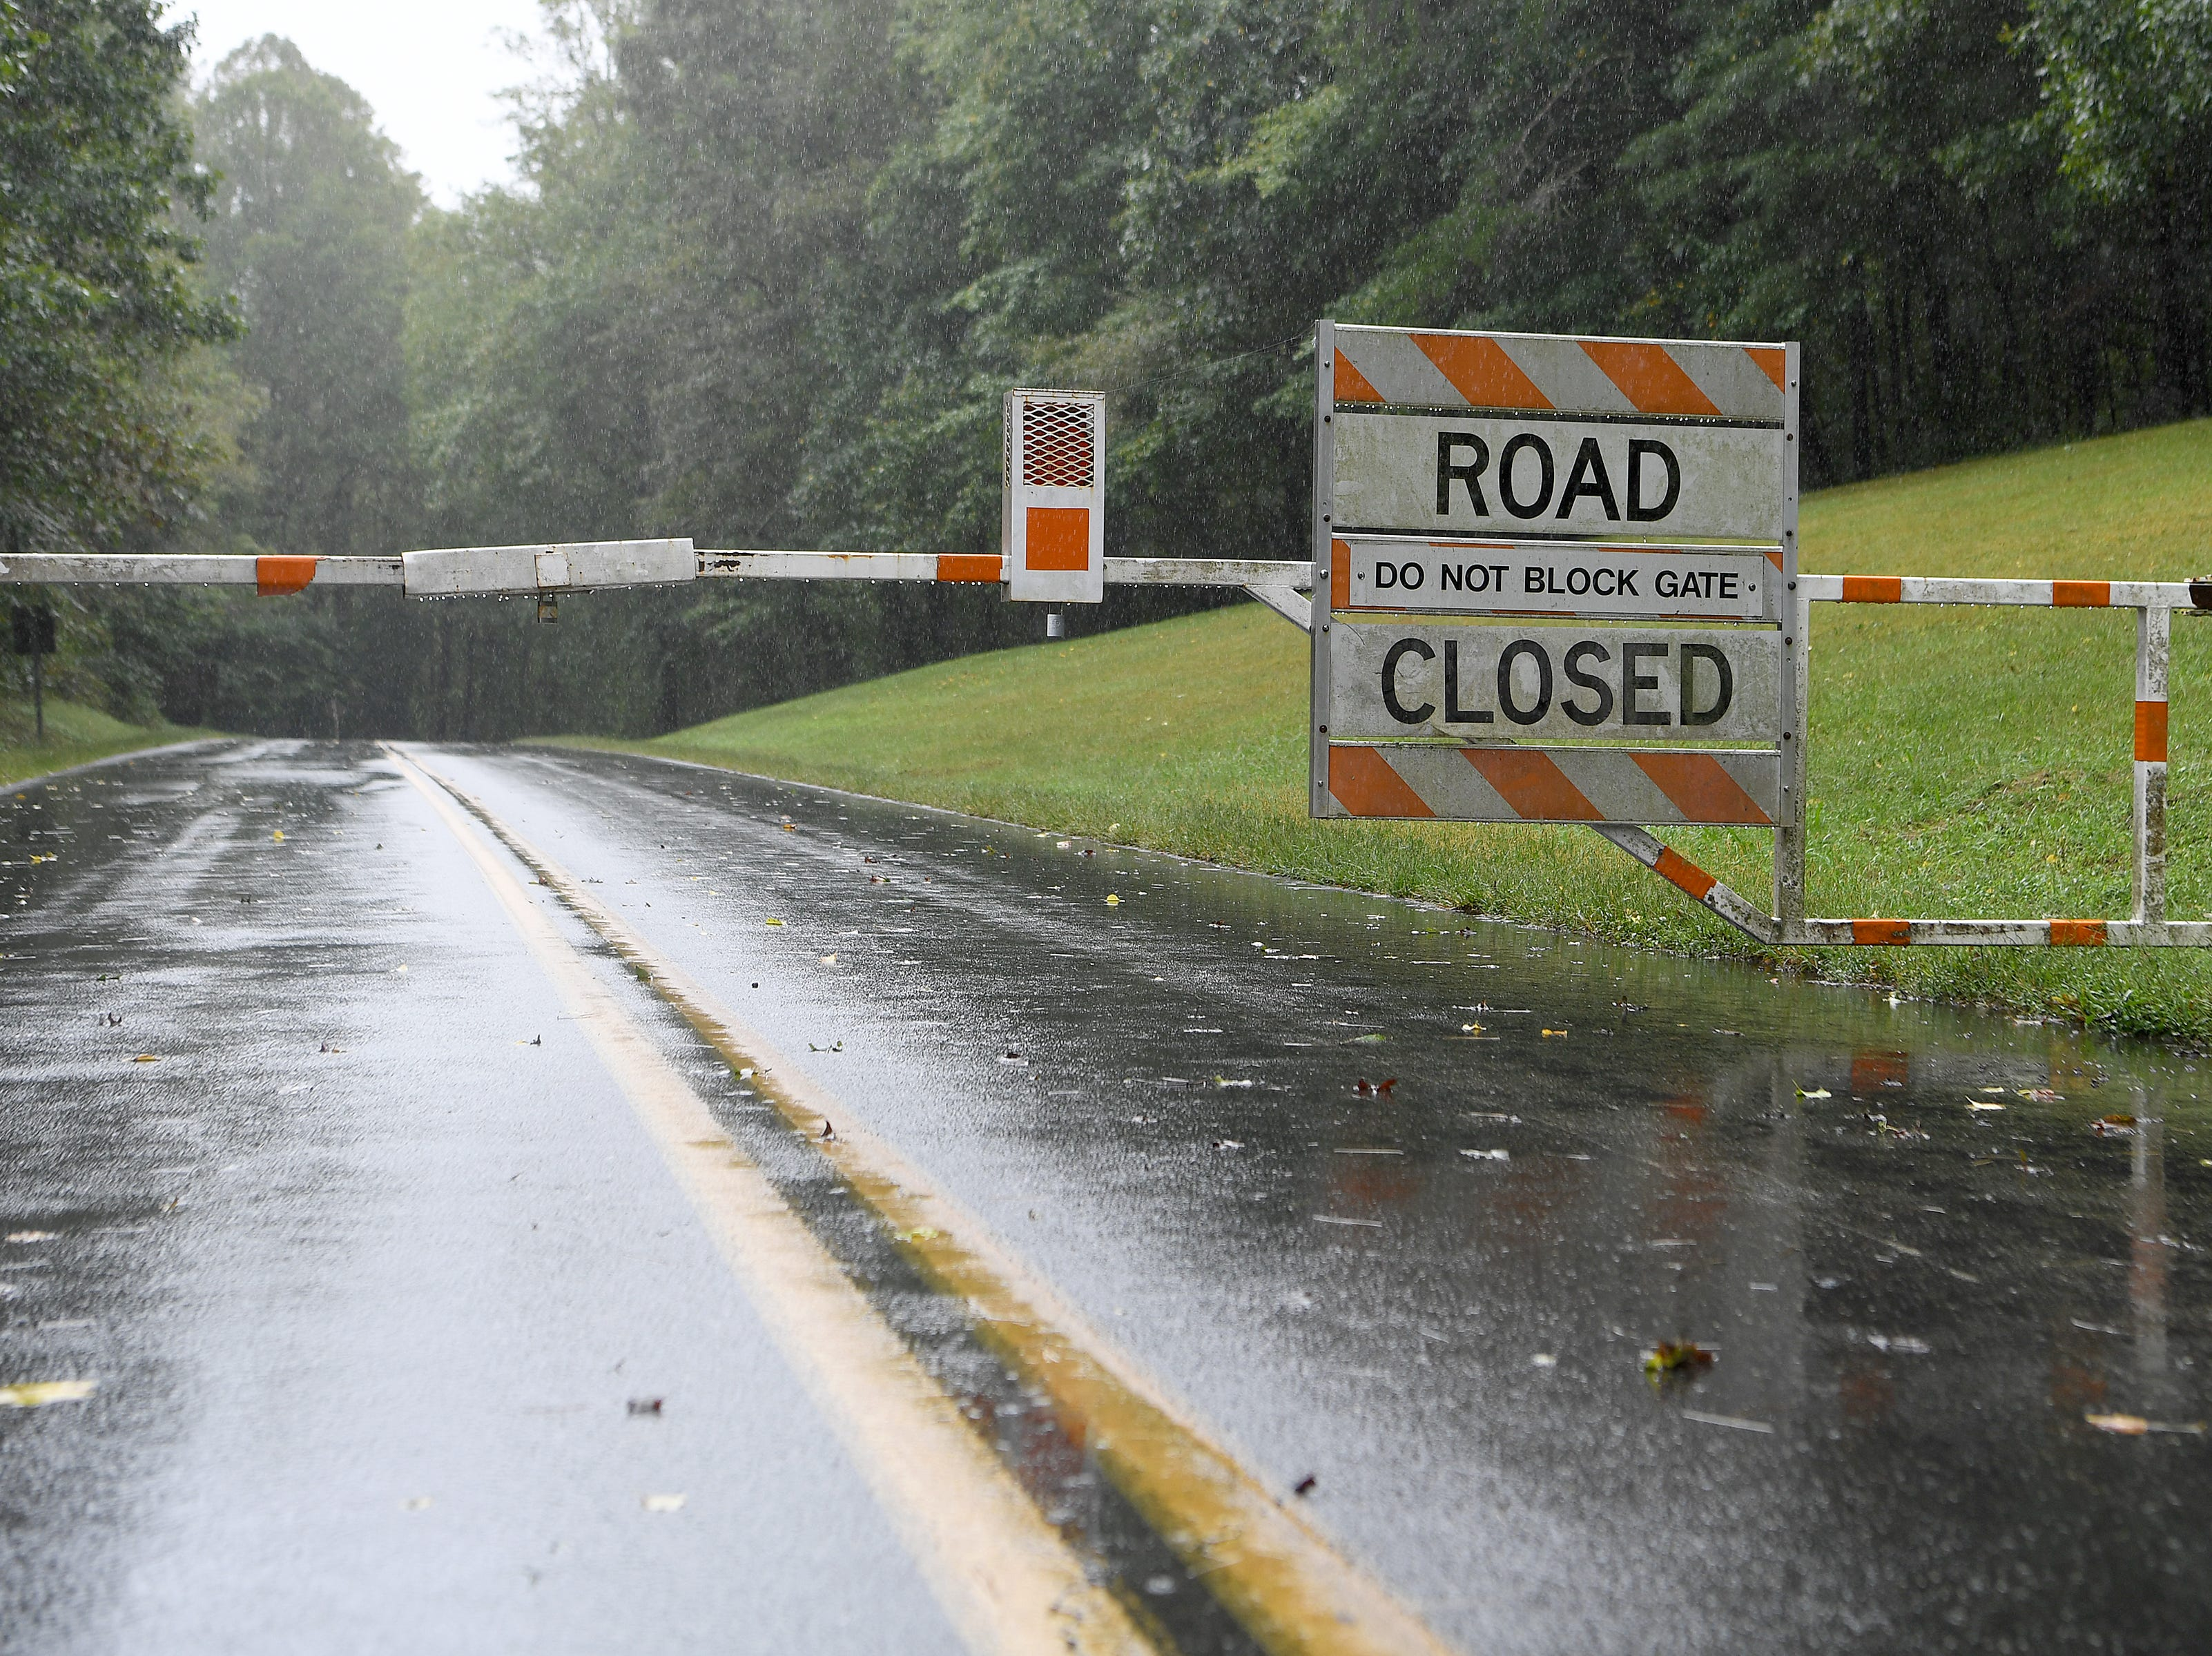 A gate blocks the Blue Ridge Parkway on Sept. 16, 2018. The entire parkway was closed ahead of the area being hit by the effects of Hurricane Florence, now downgraded to a tropical depression.